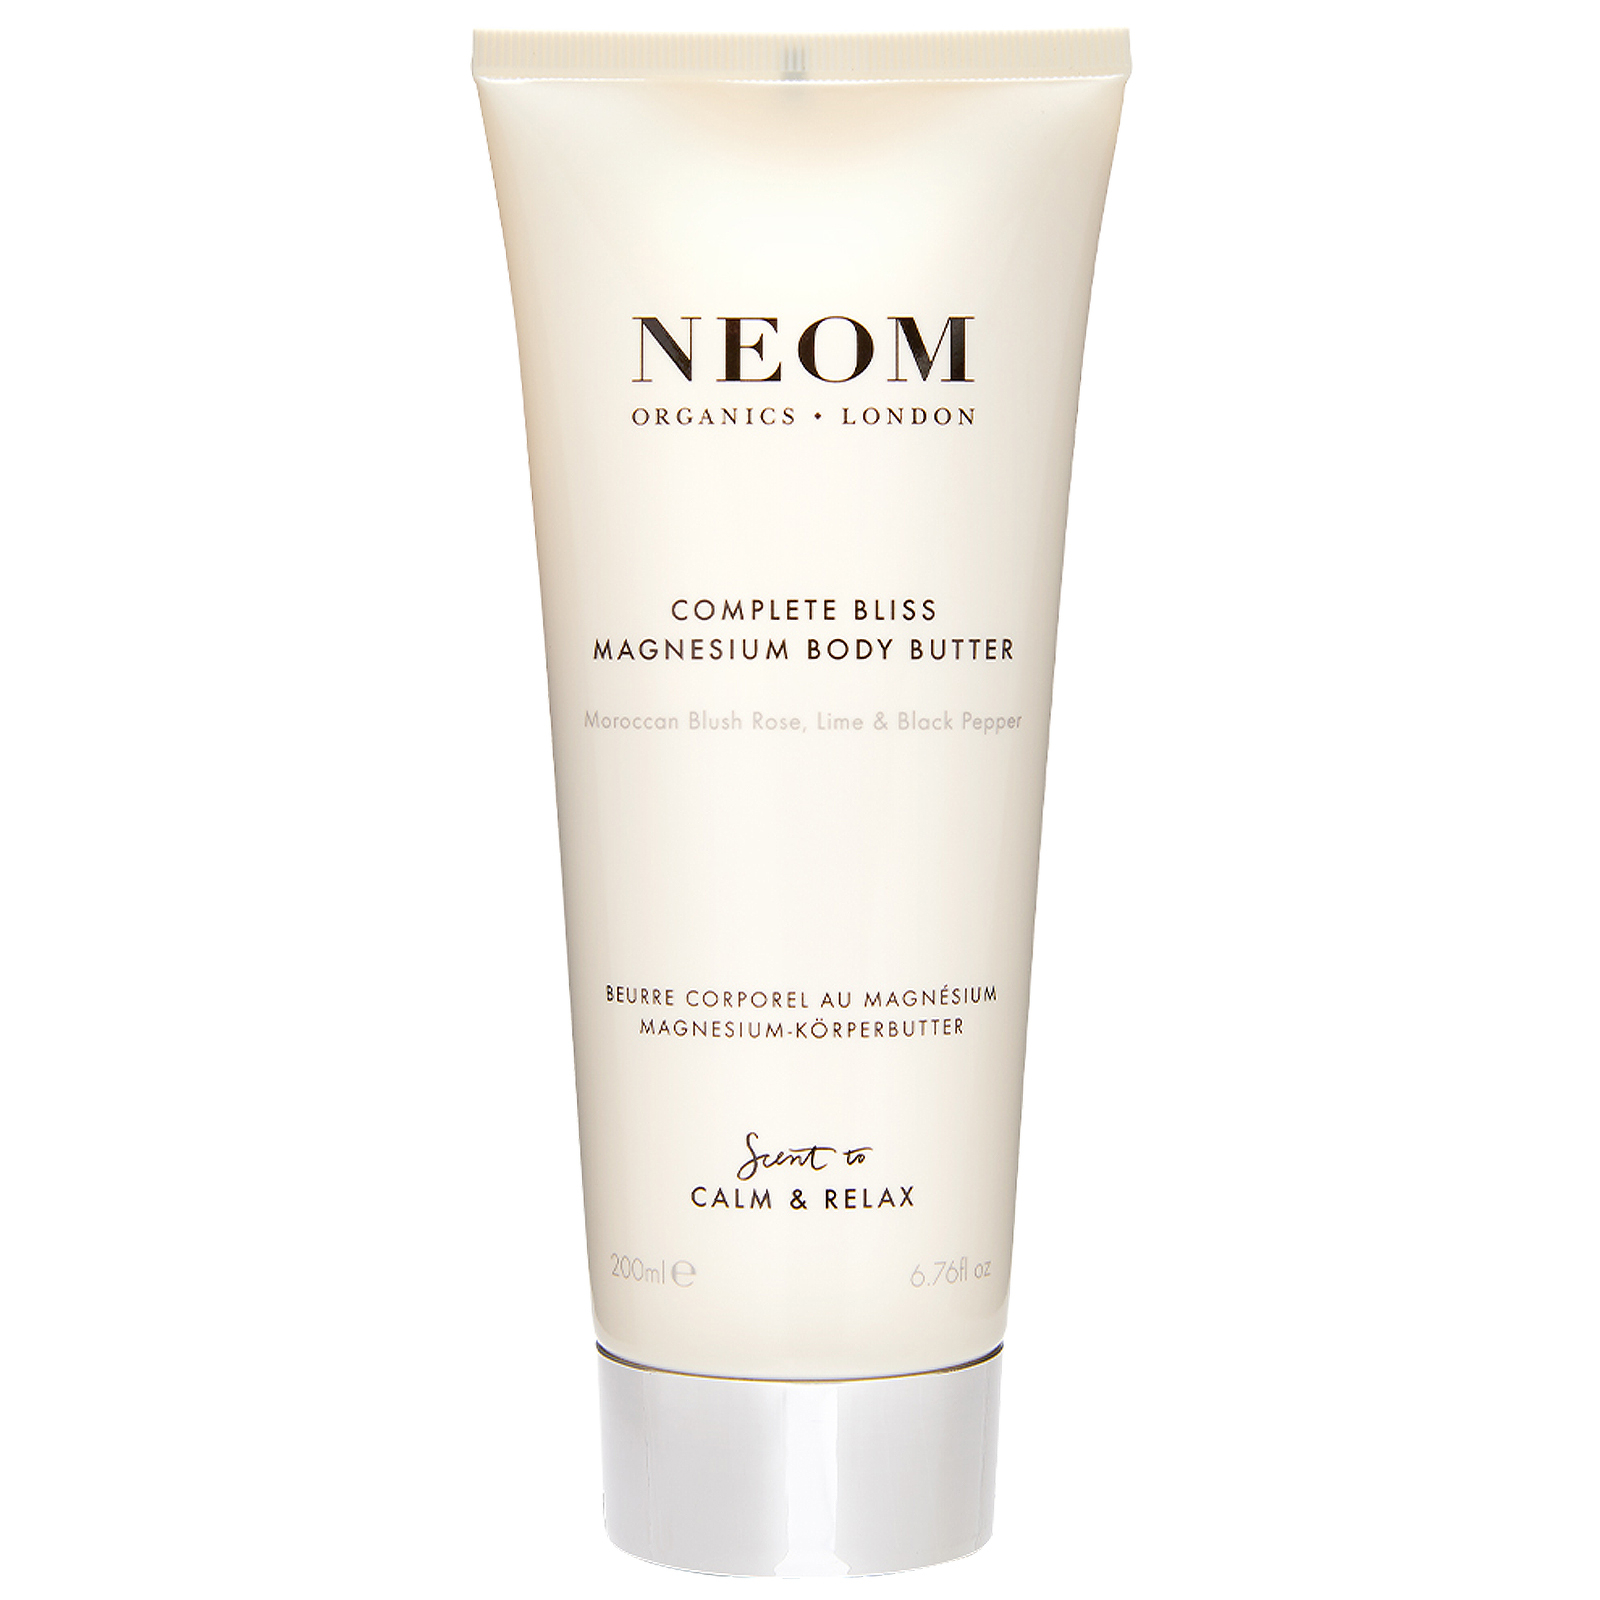 Neom Organics London Scent To Calm & Relax Complete Bliss Magnesium Body Butter 200ml